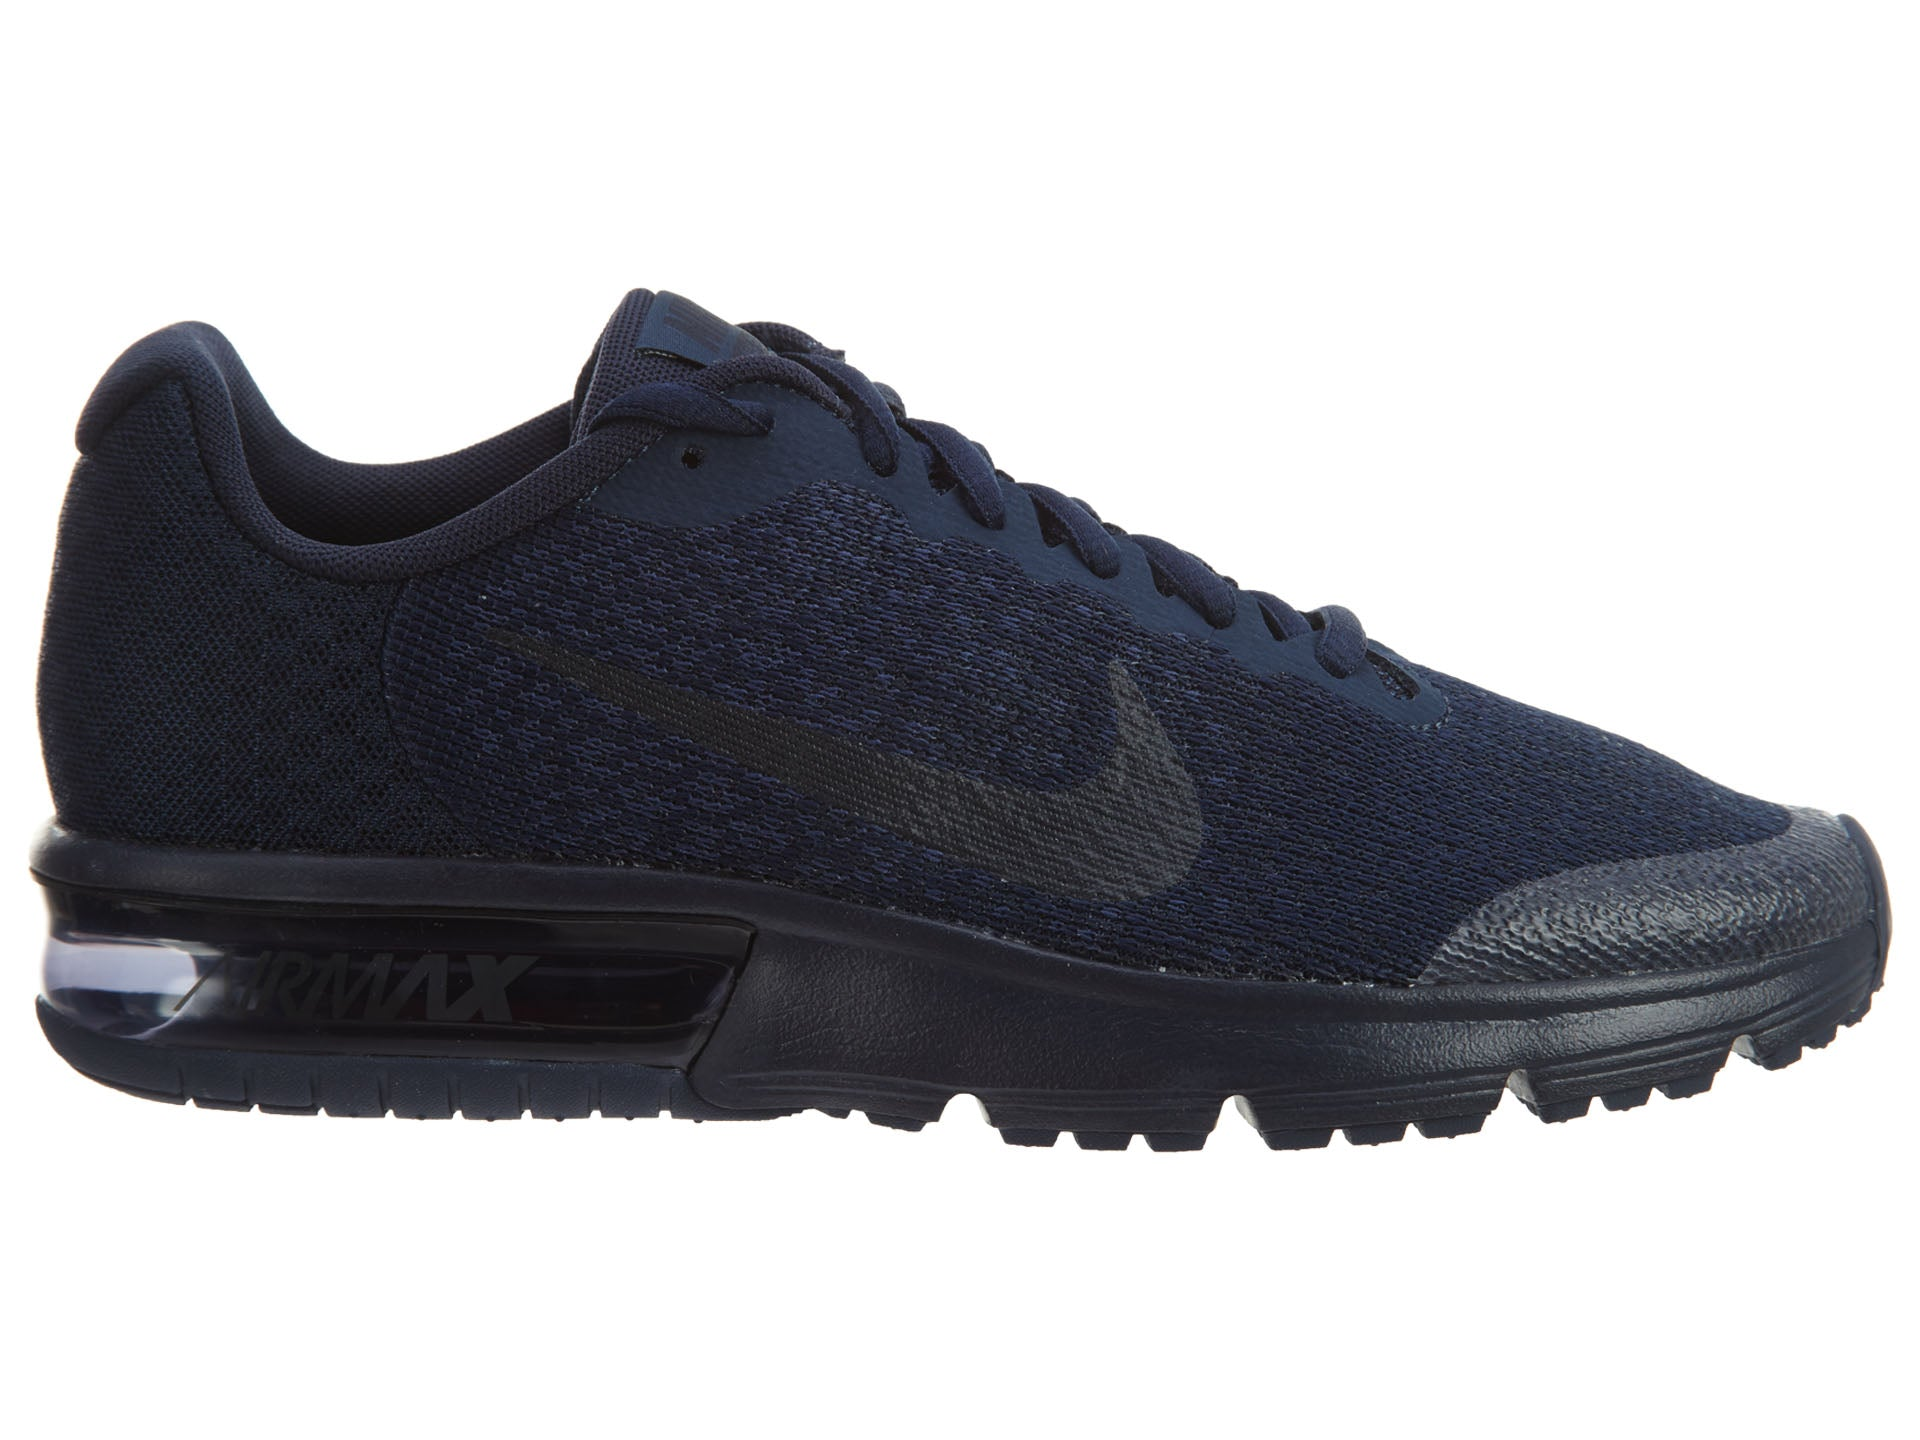 863572e9ad Nike Air Max Sequent 2 Big Kids Style : 869993 – shoesrevolutionstore